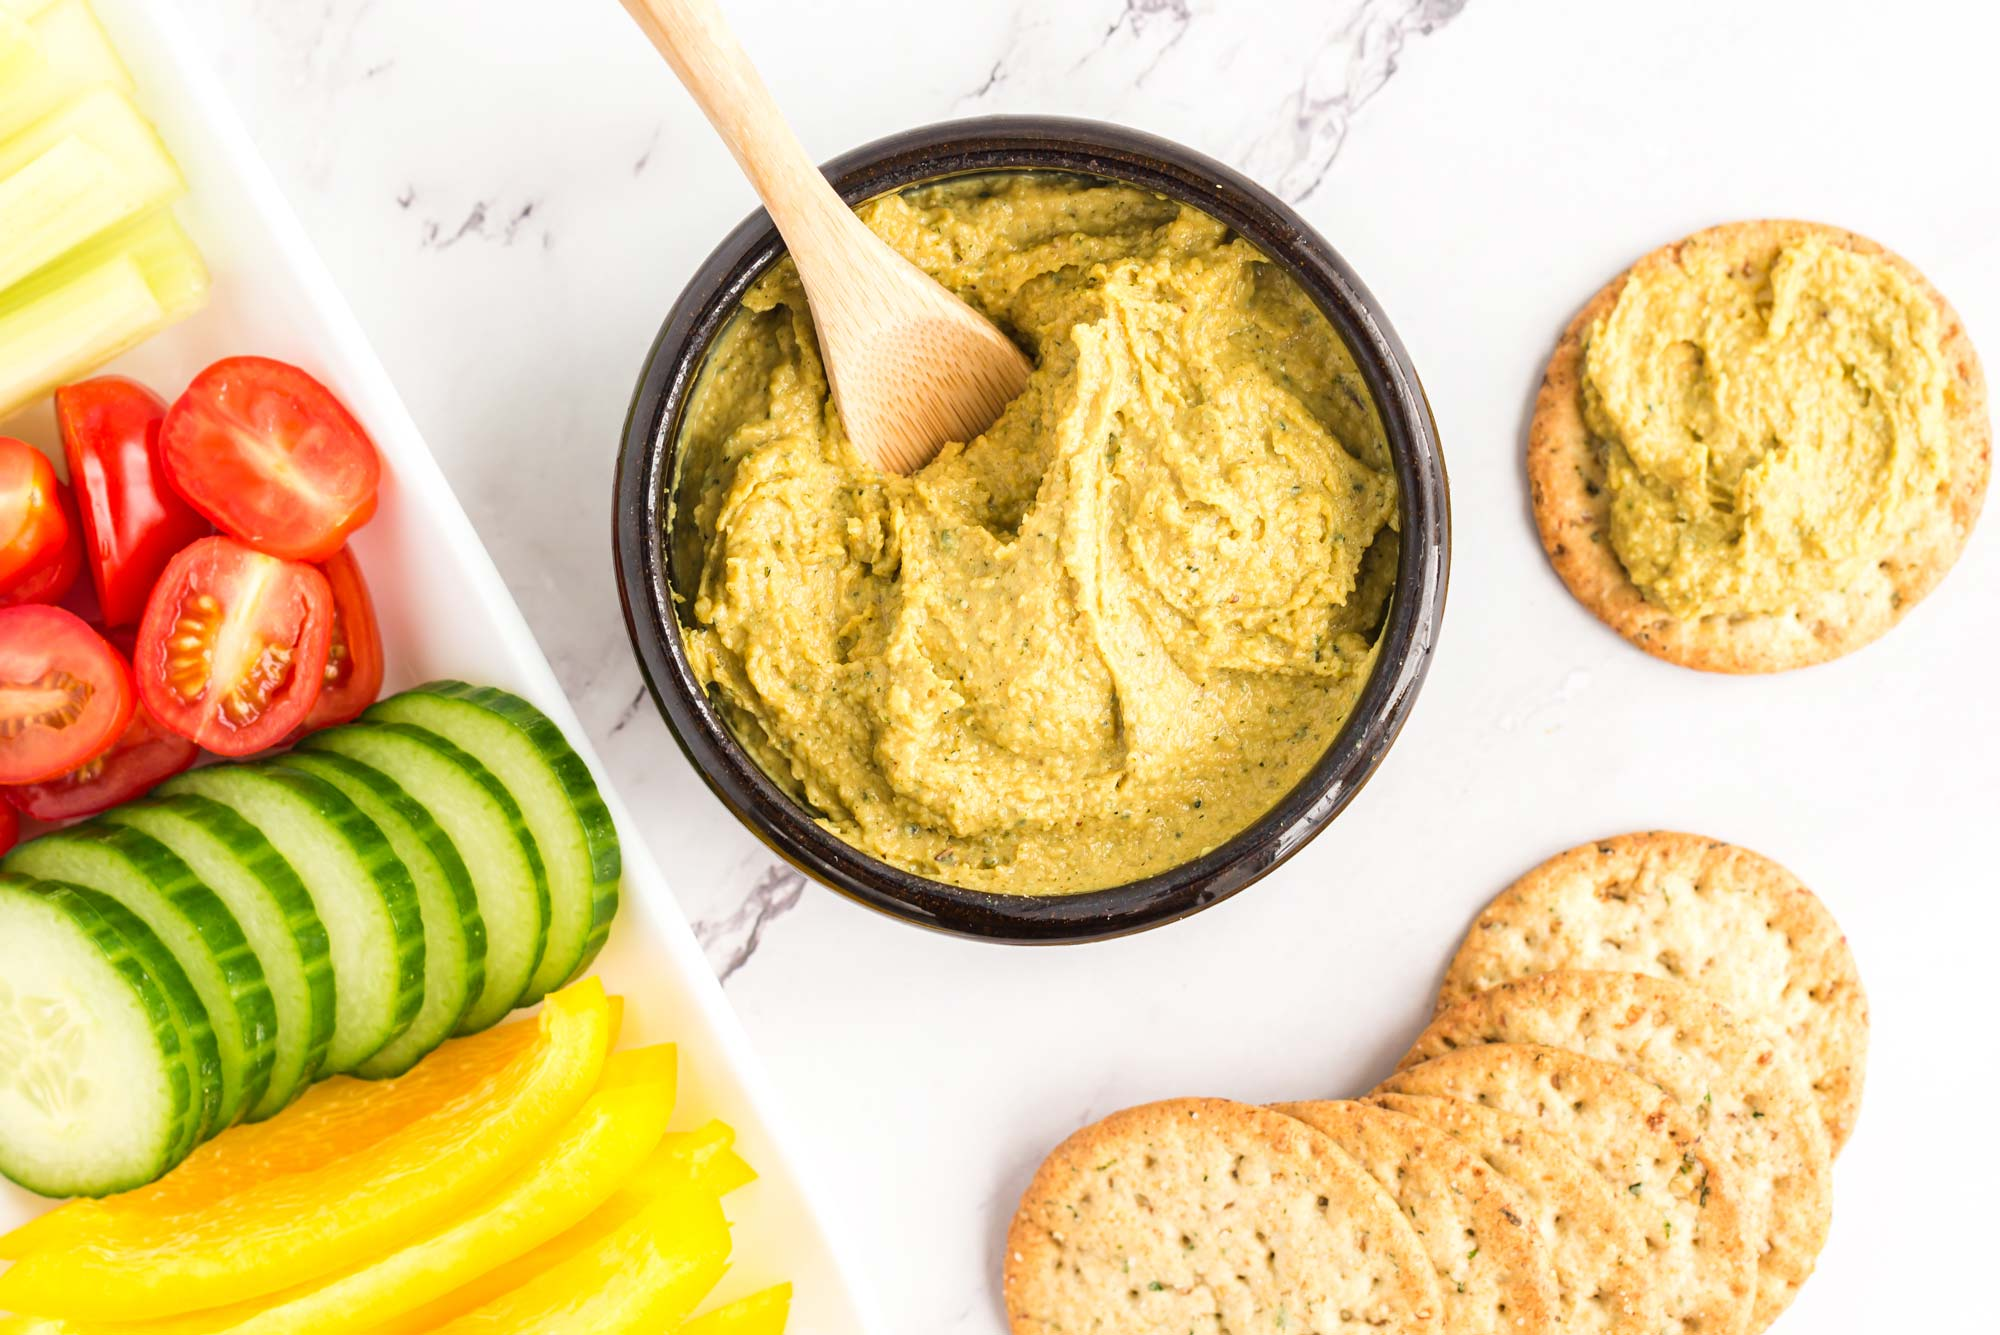 Garlicky cheesy hemp seed spread